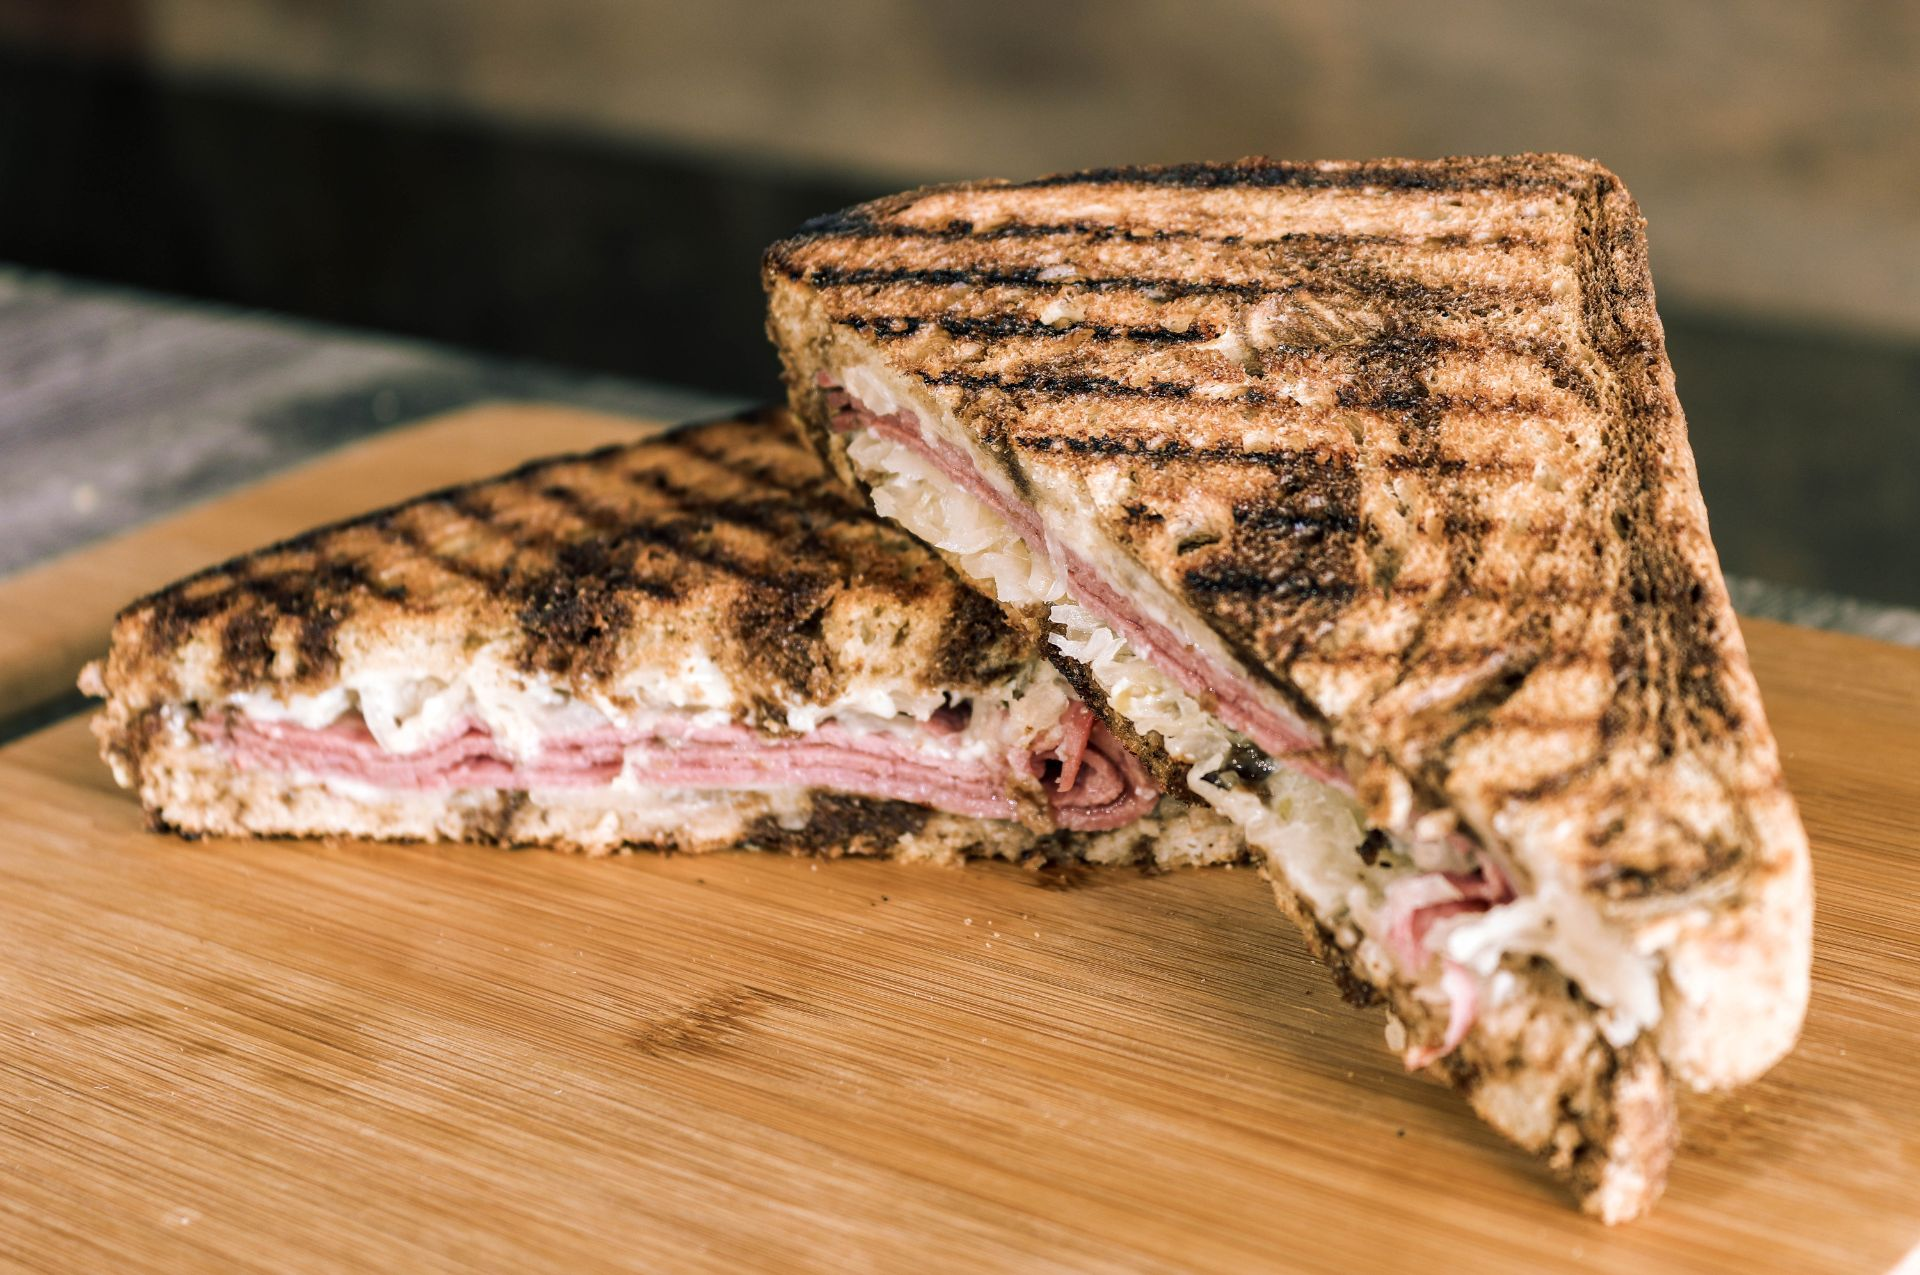 Reuben sandwich on toasted rye